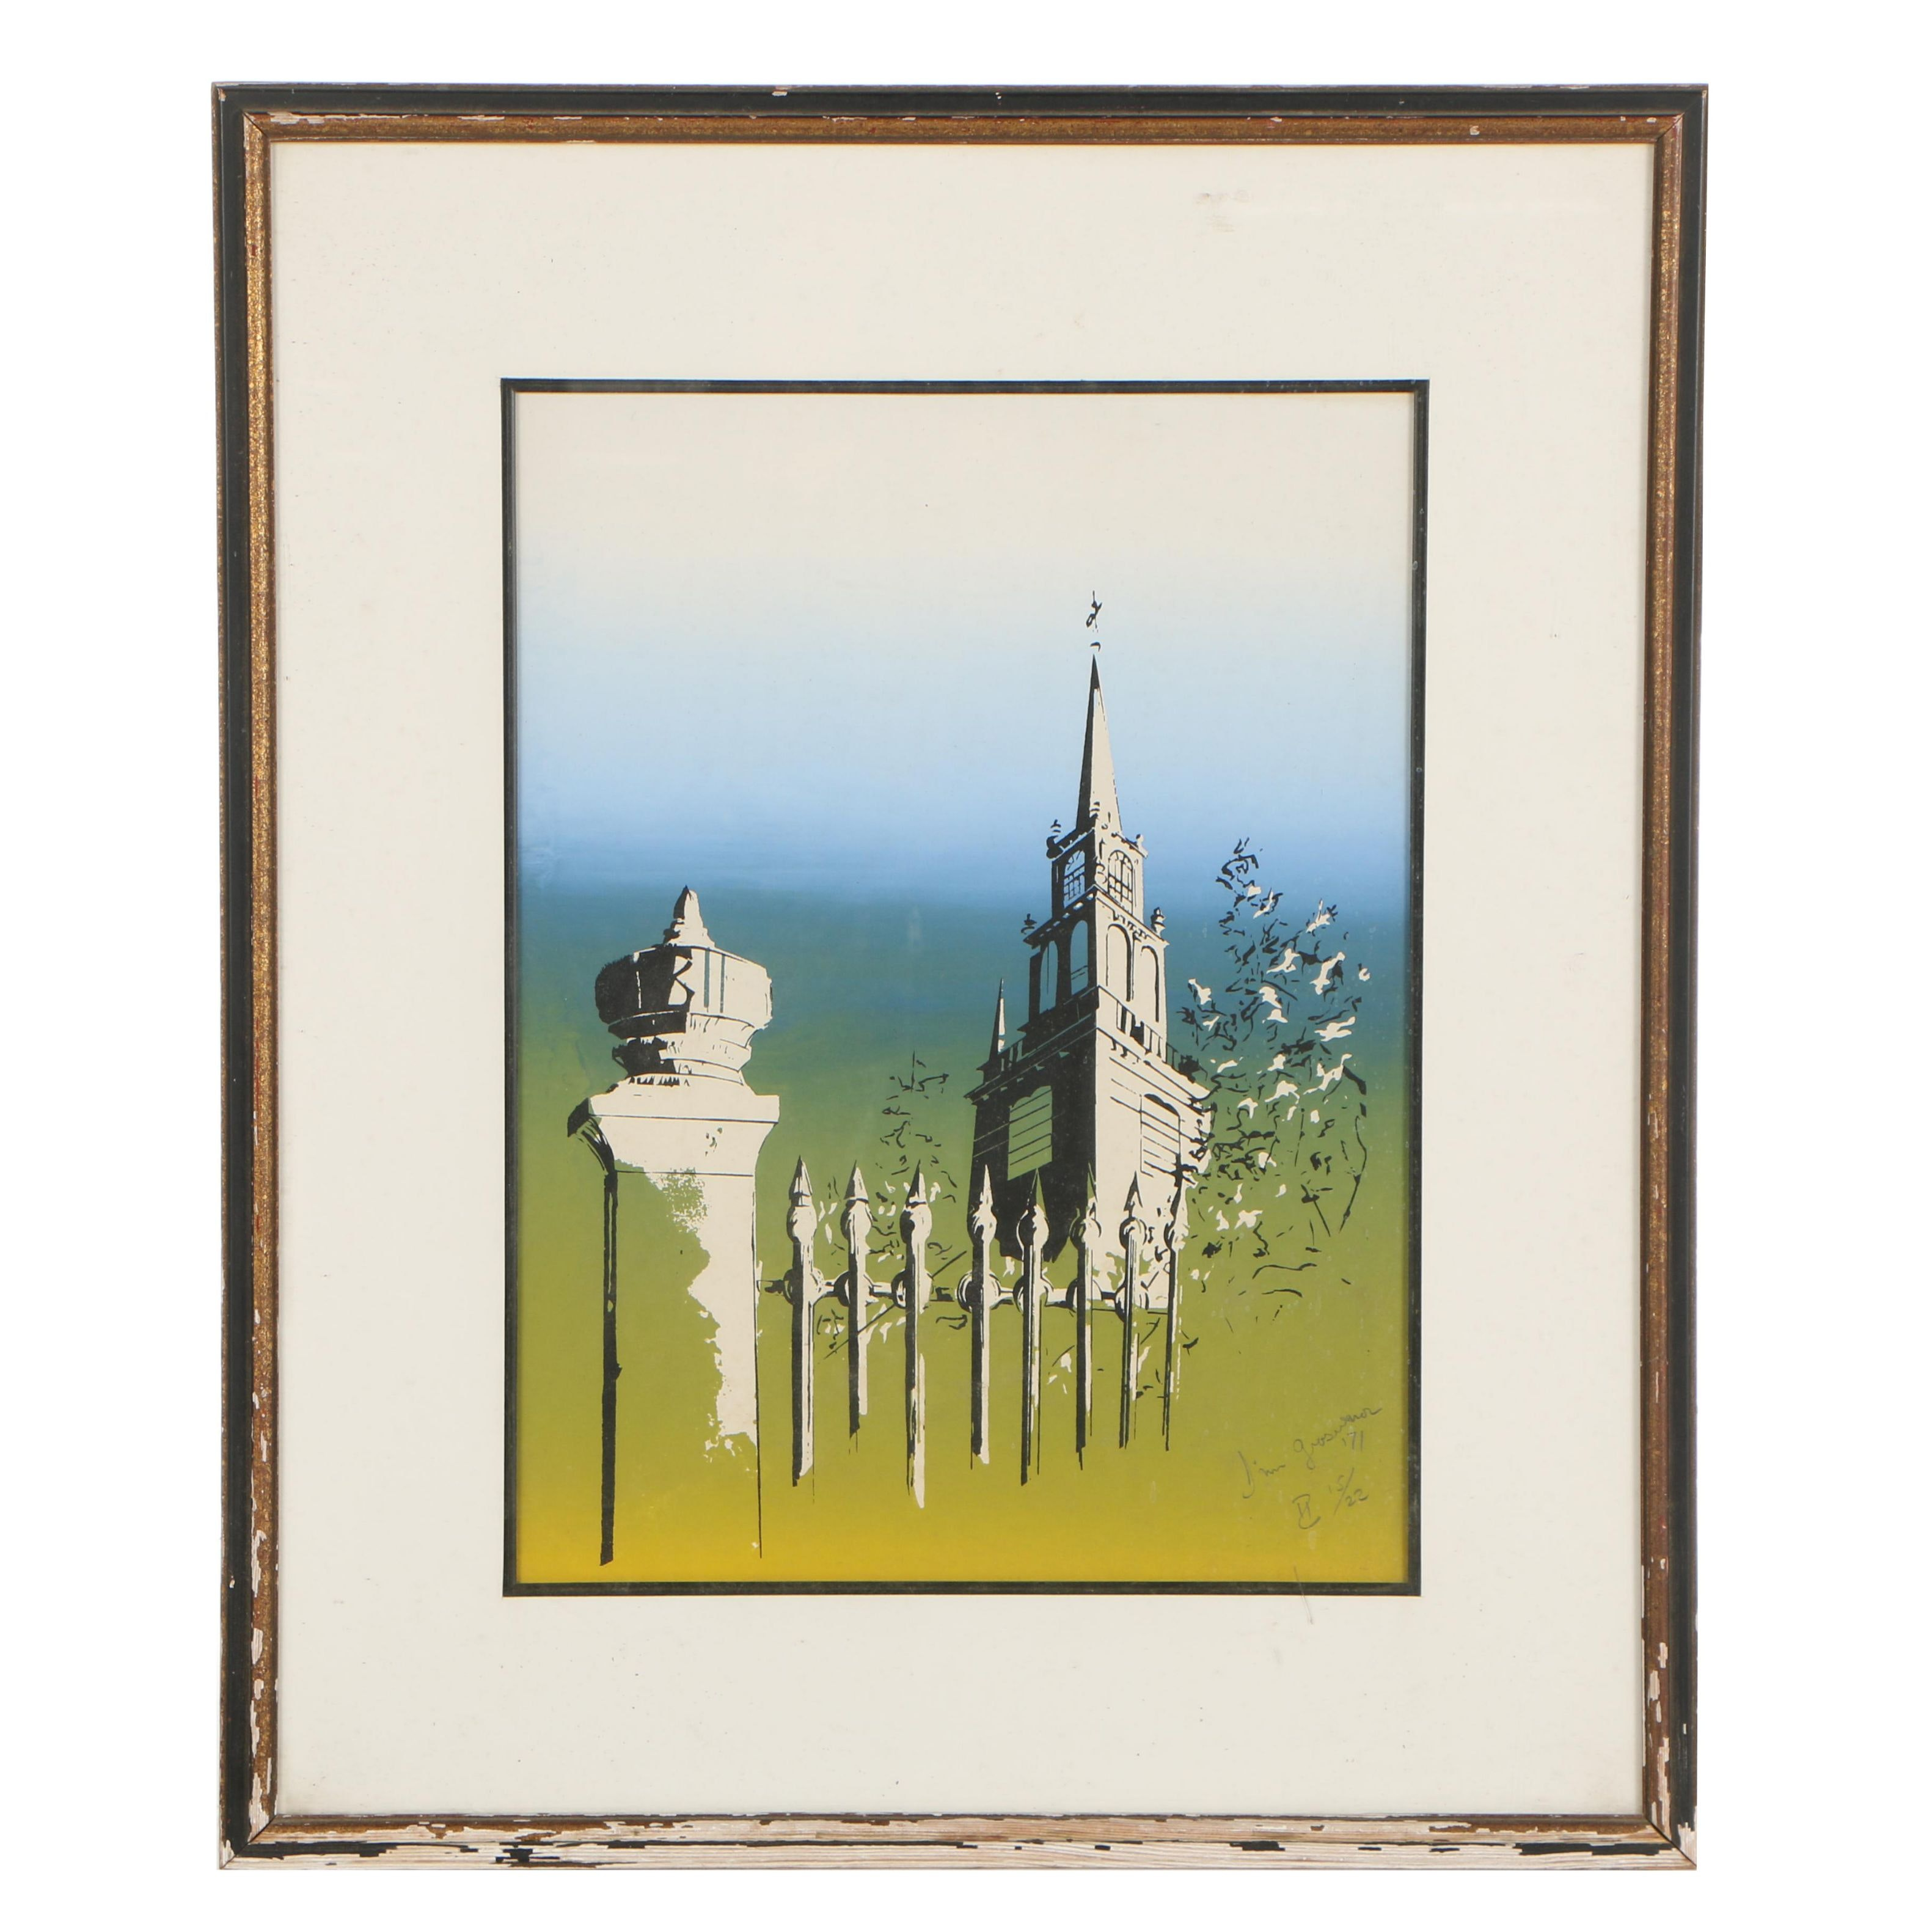 Abstract Serigraph of a Spire